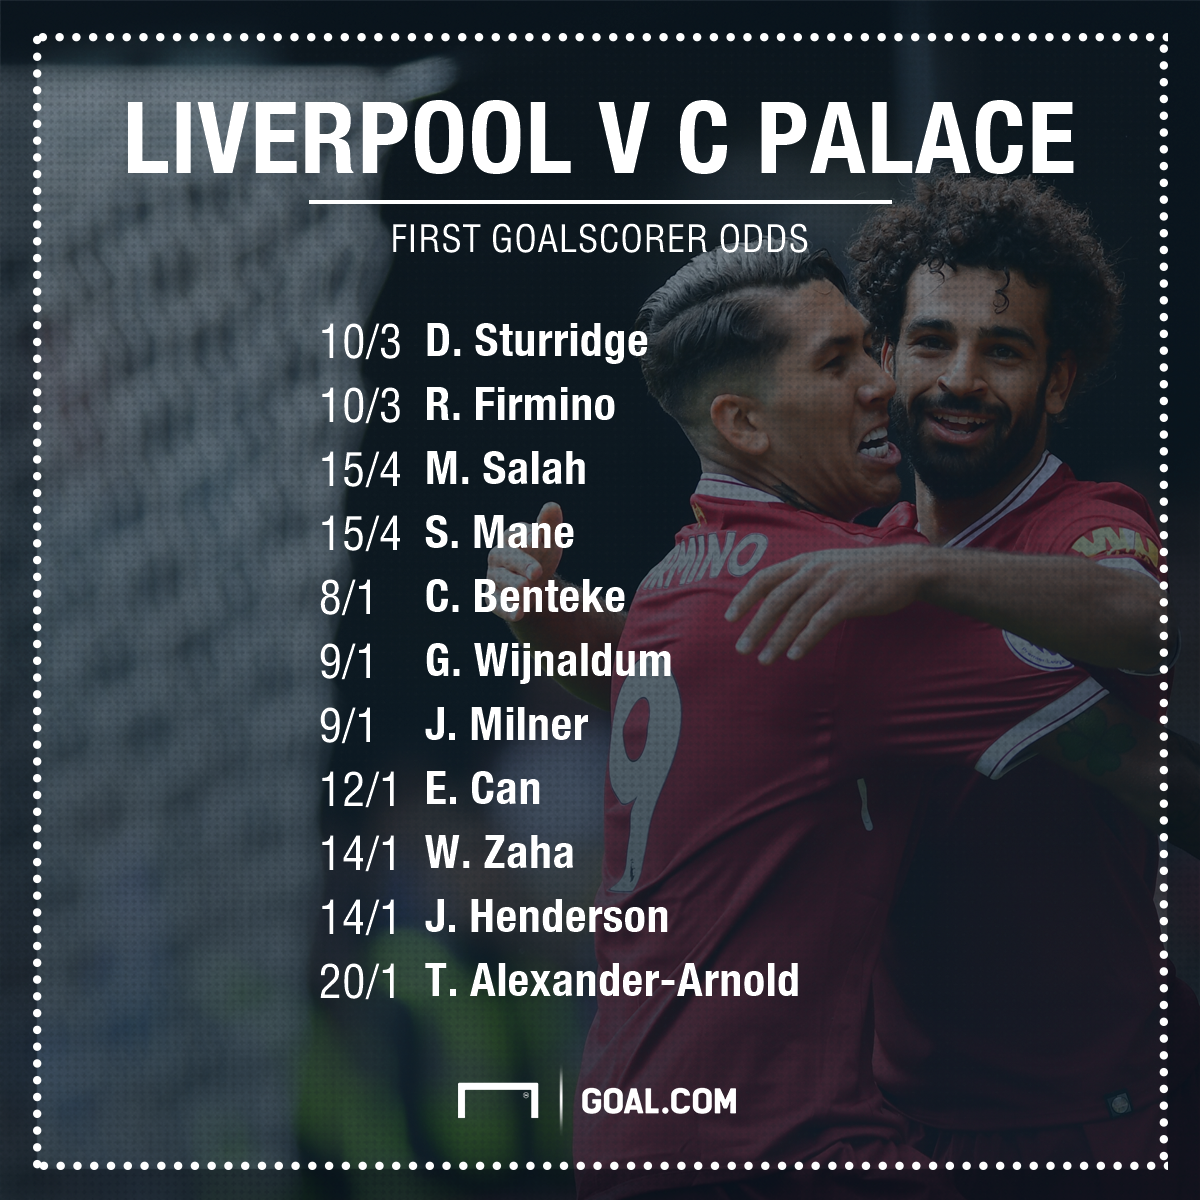 Liverpool v Palace odds